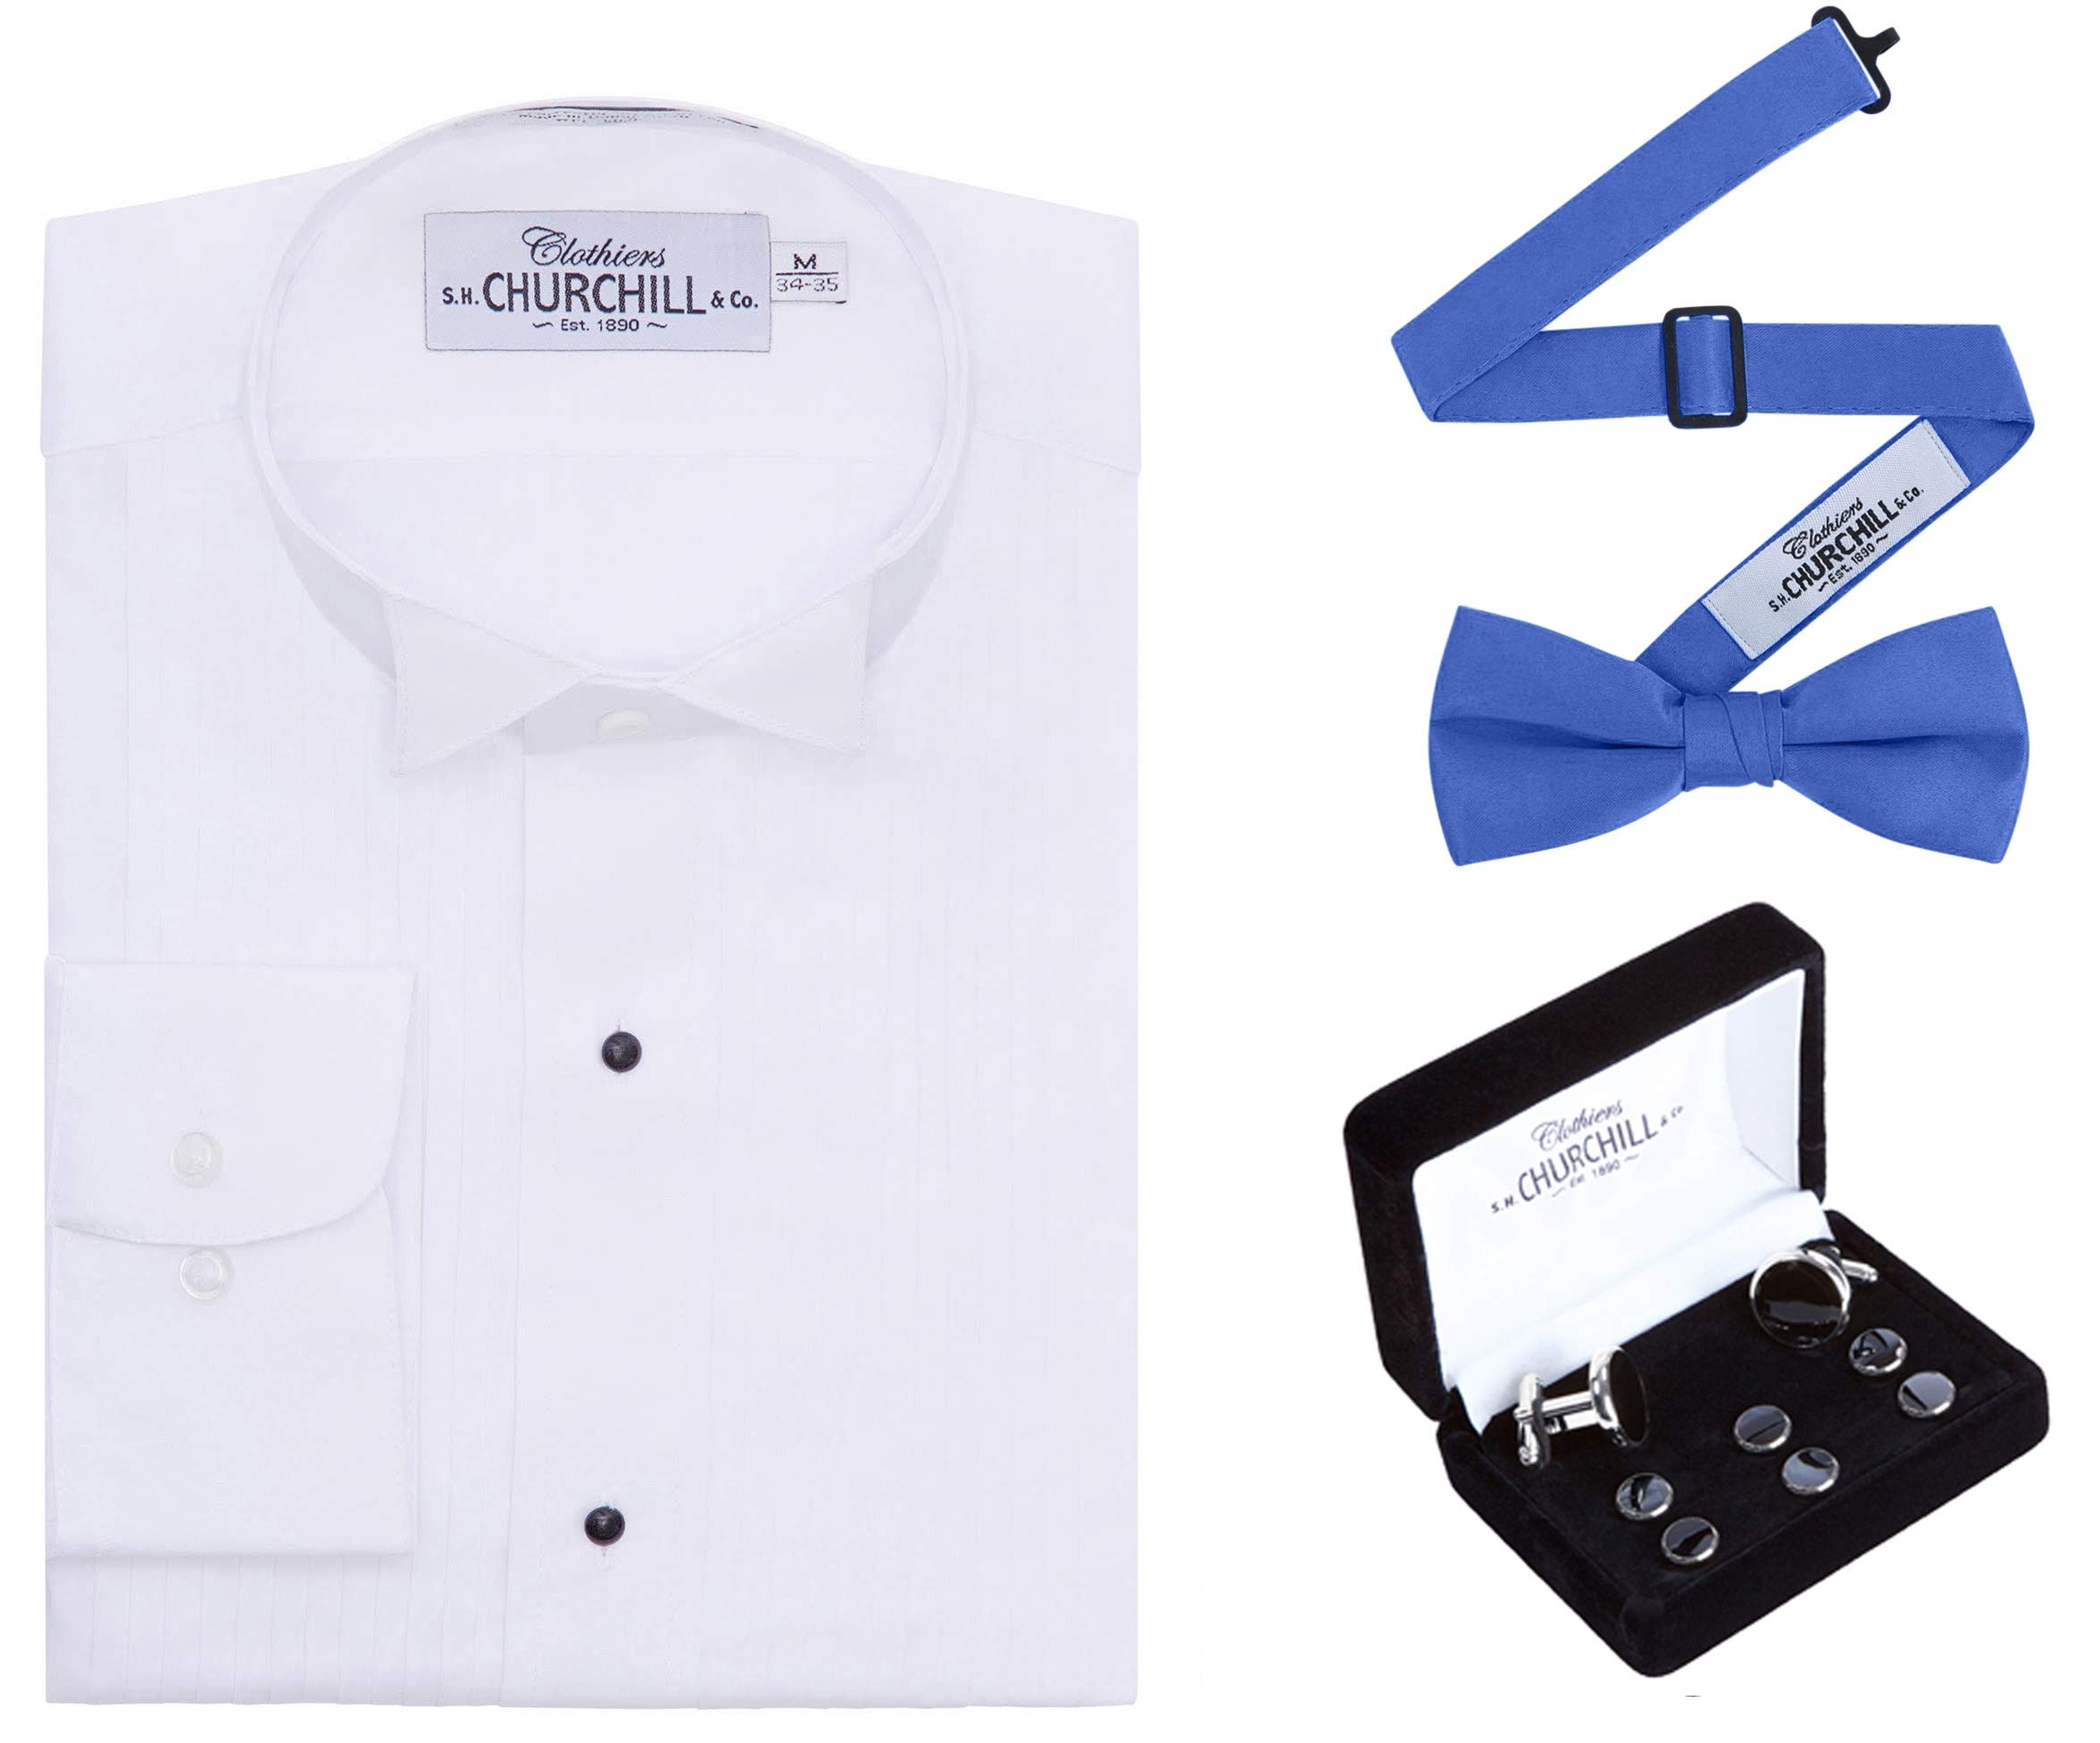 Mens White Wing Tuxedo Shirt, Royal Bowtie & Silver Stud Set (21 36/37) by S.H. Churchill & Co.